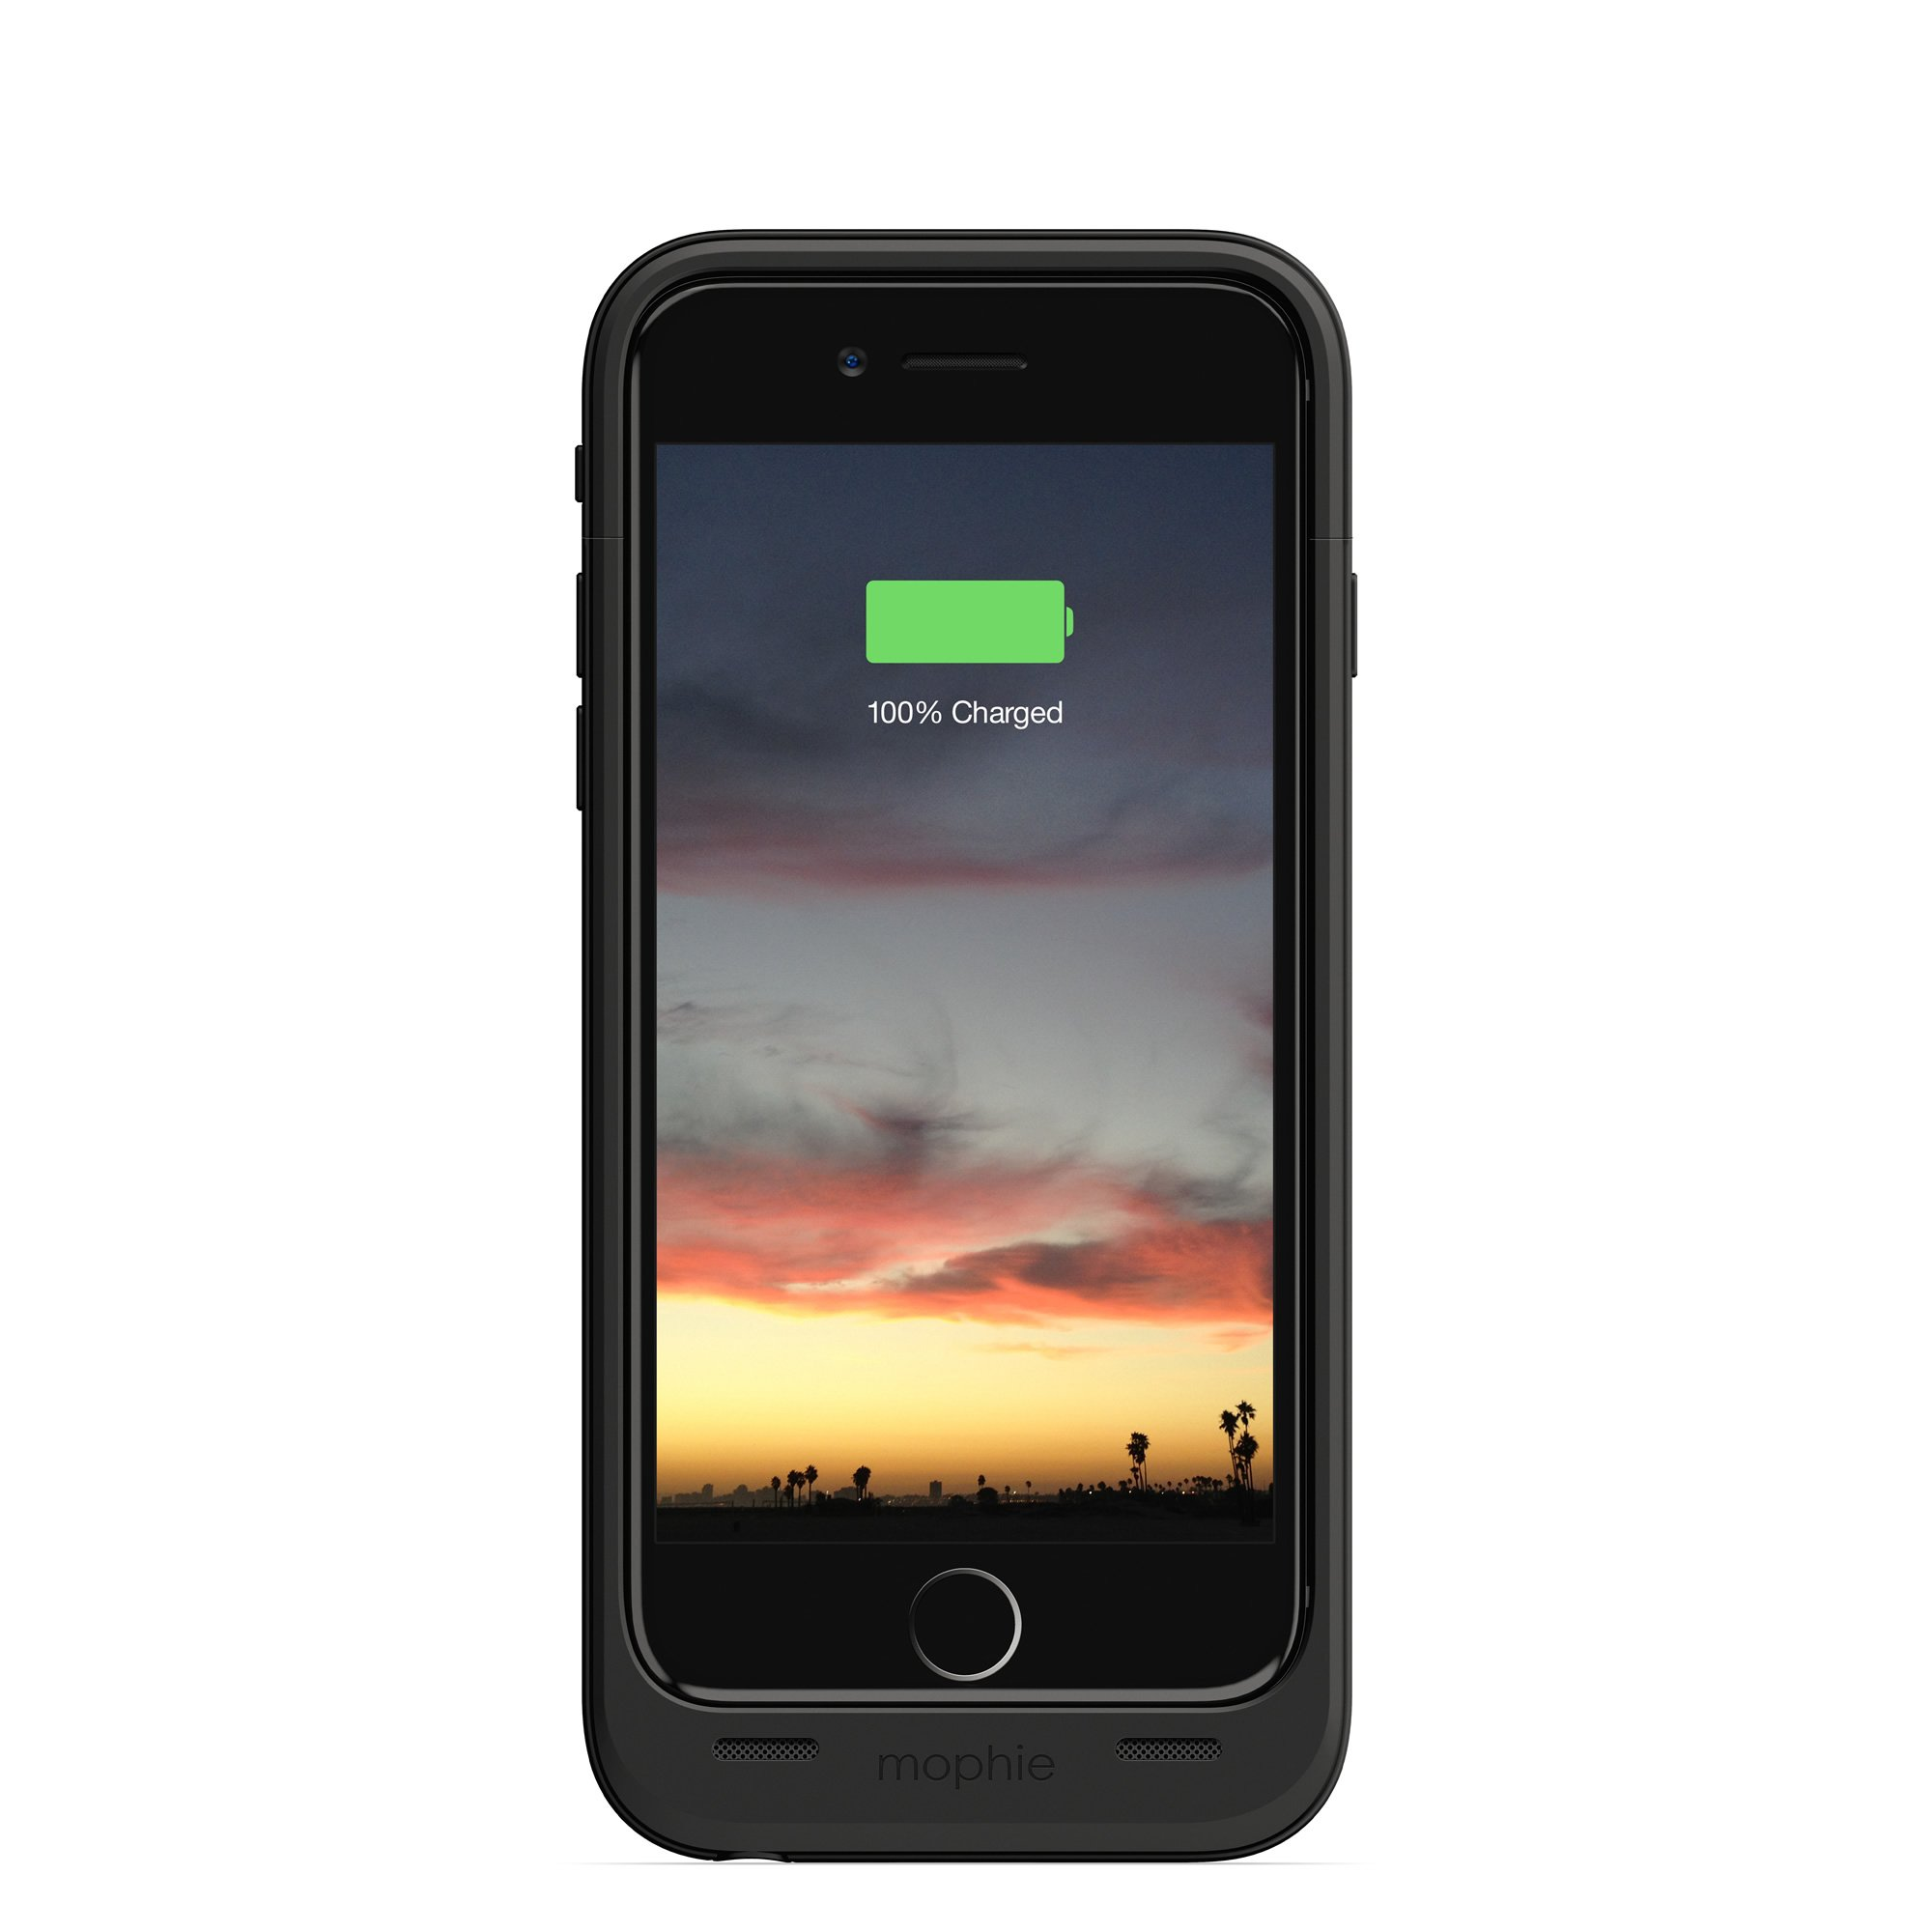 mophie juice pack air - Slim Protective Mobile Battery Pack Case for iPhone 6/6s - Black by mophie (Image #1)